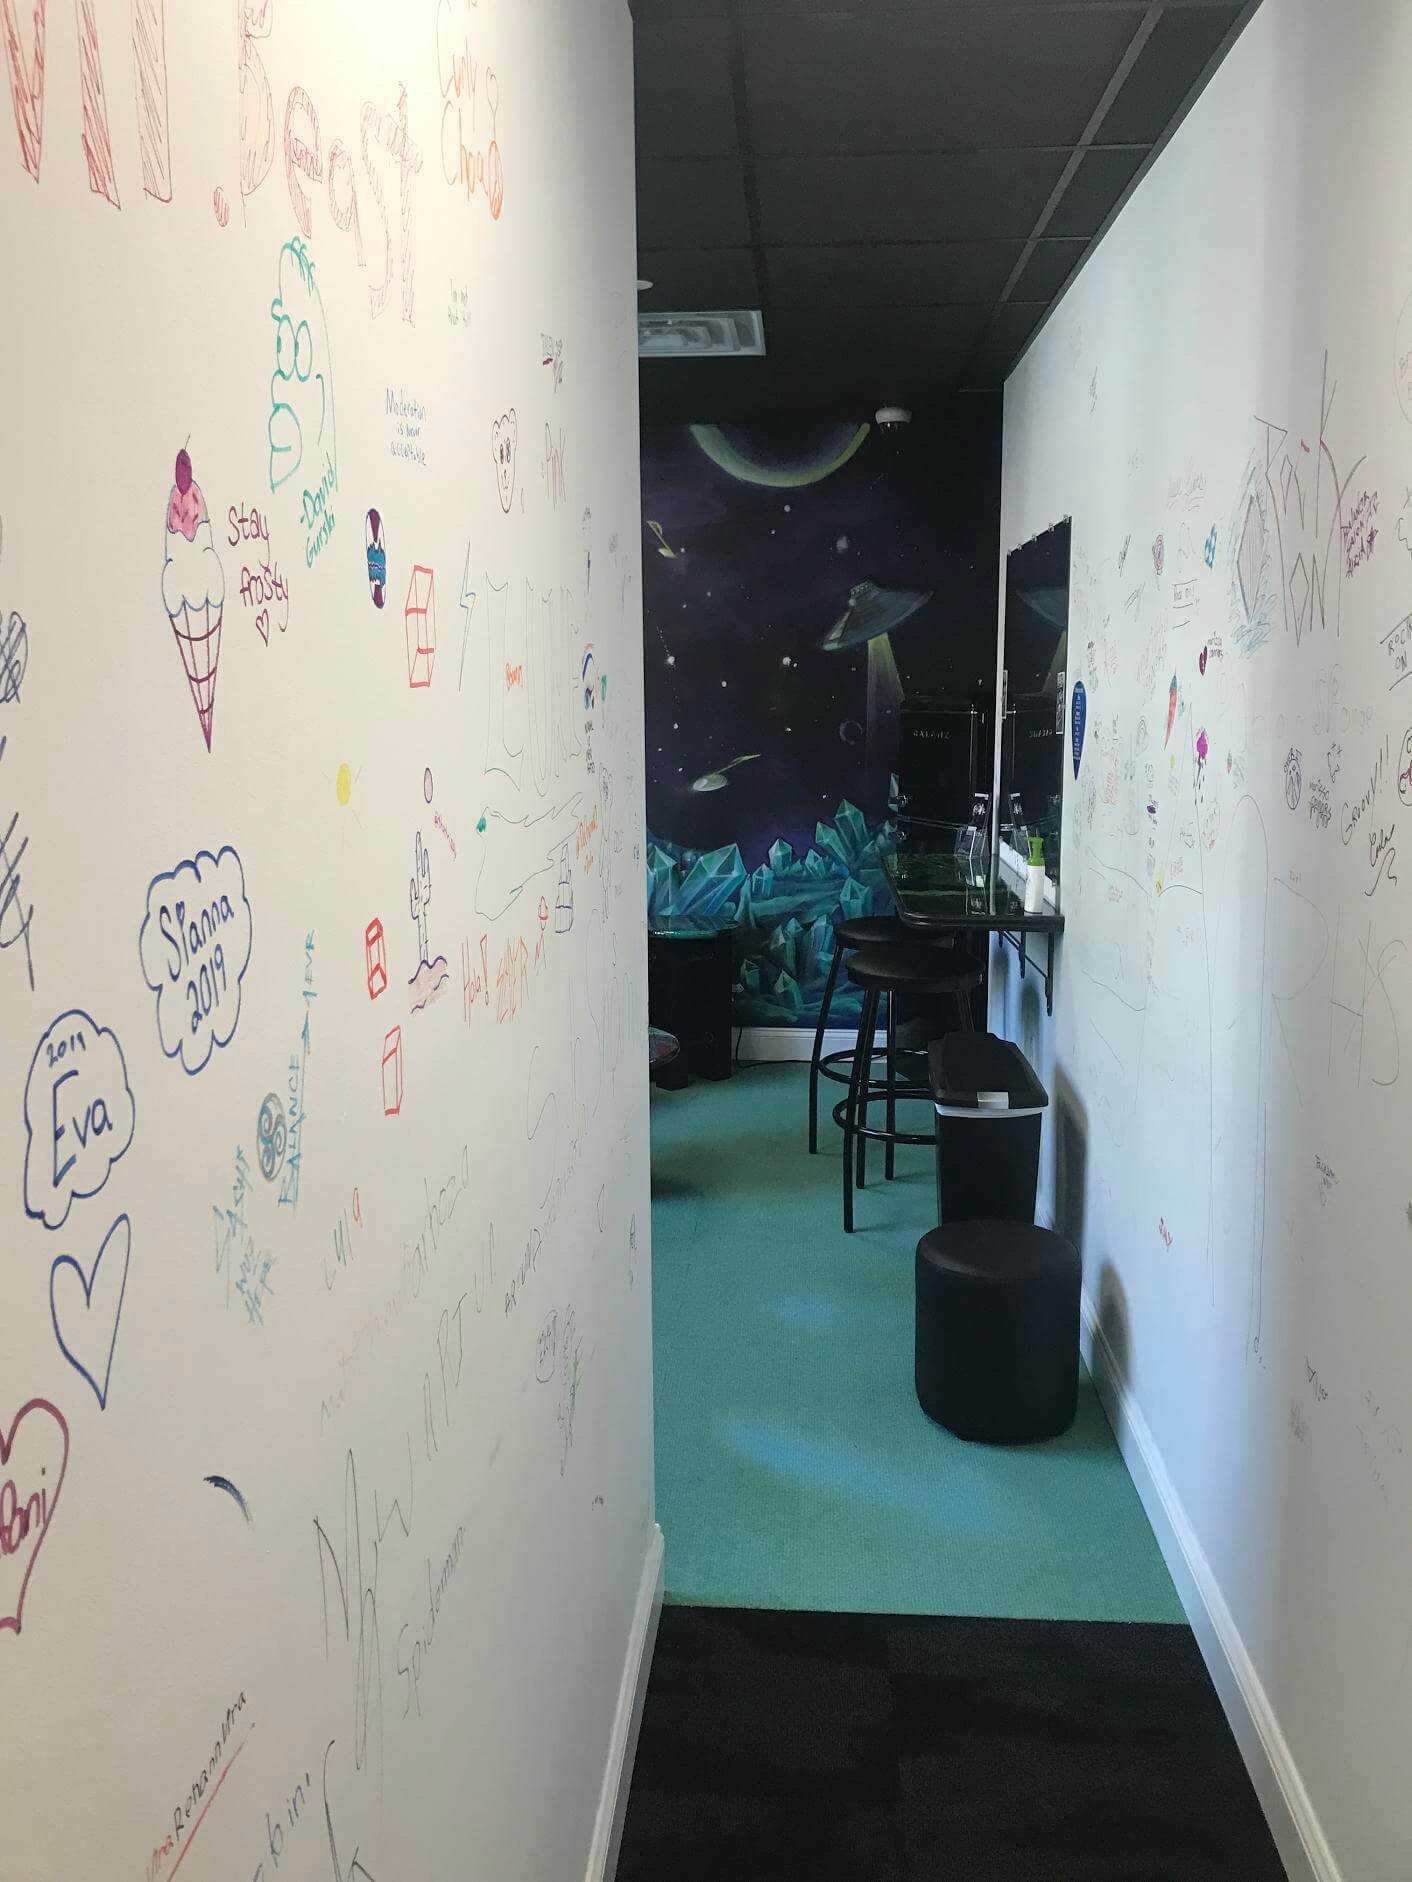 Our enrolled rockers signature wall is an important area of our school.